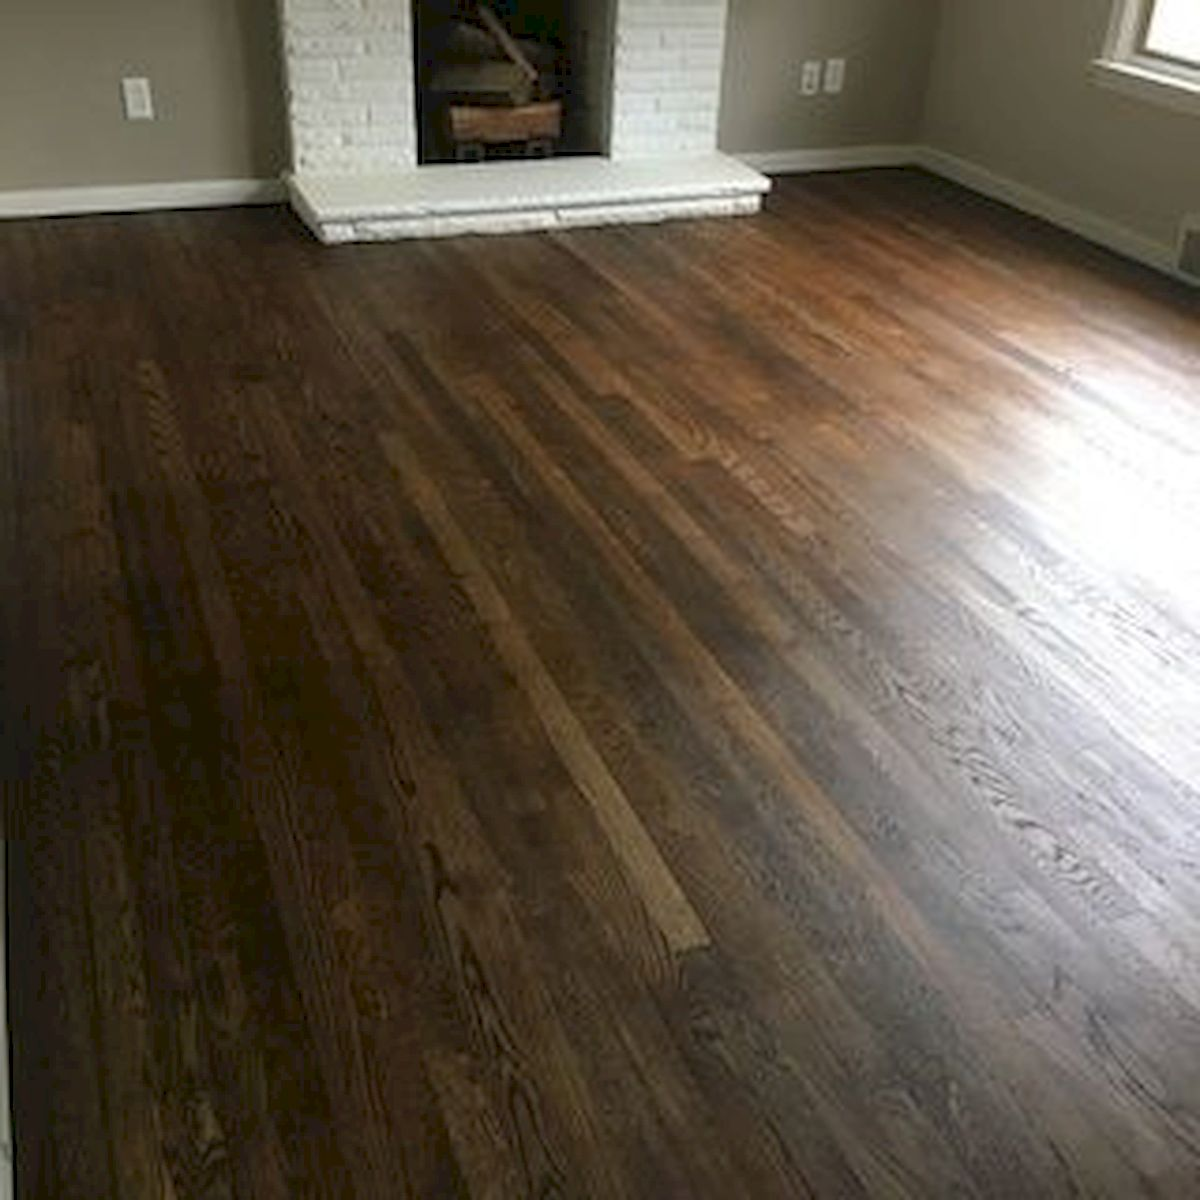 80 Gorgeous Hardwood Floor Ideas for Interior Home (79)